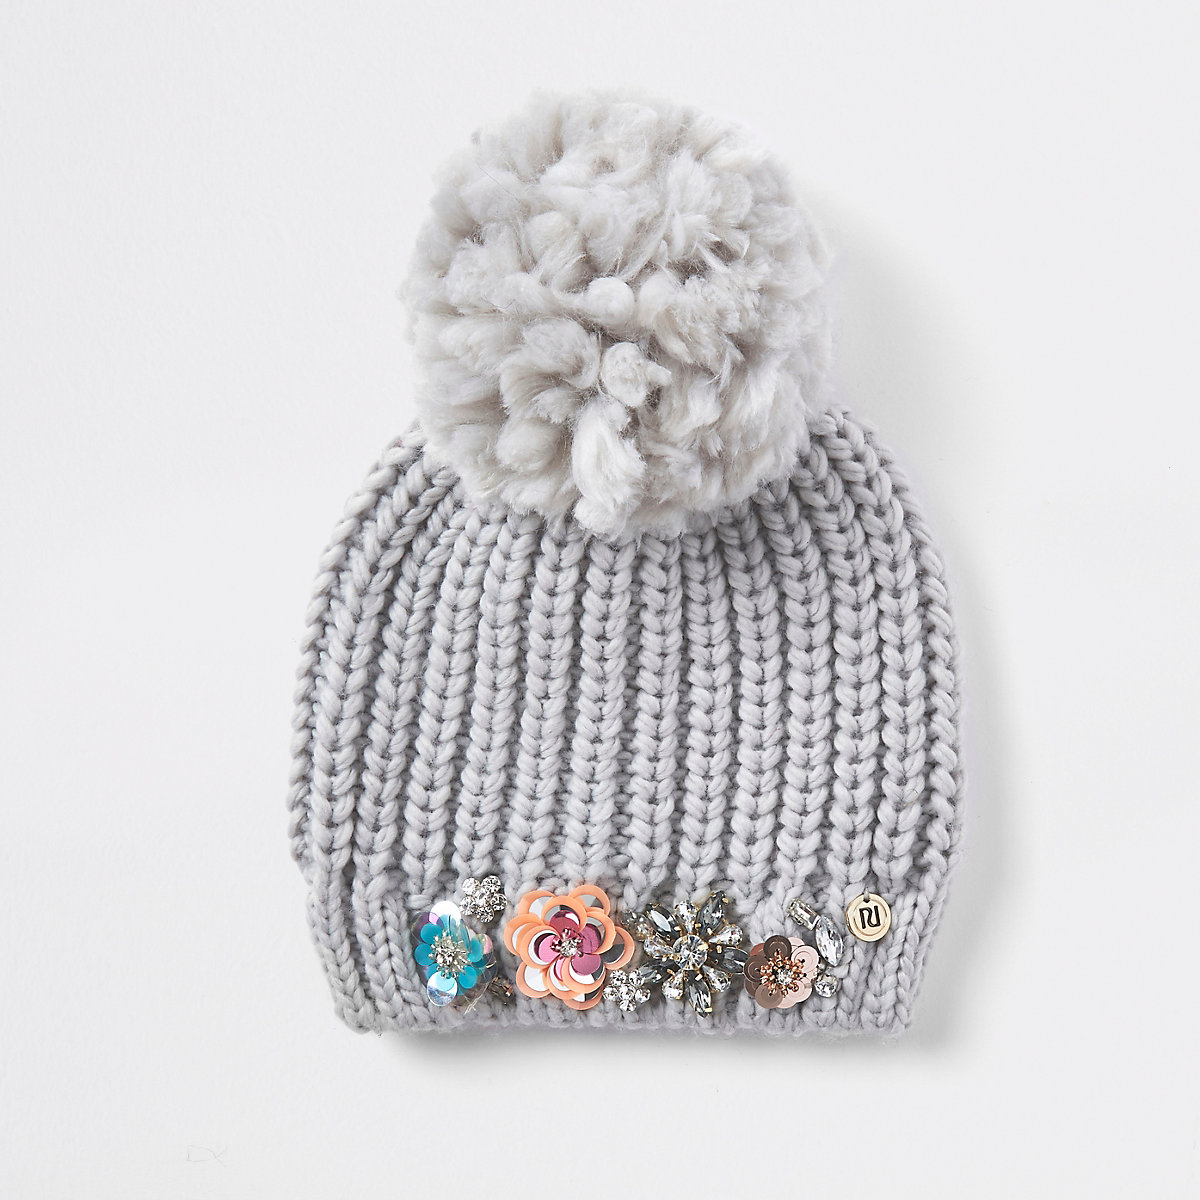 9ed5d5569 Grey knit embellished beanie hat